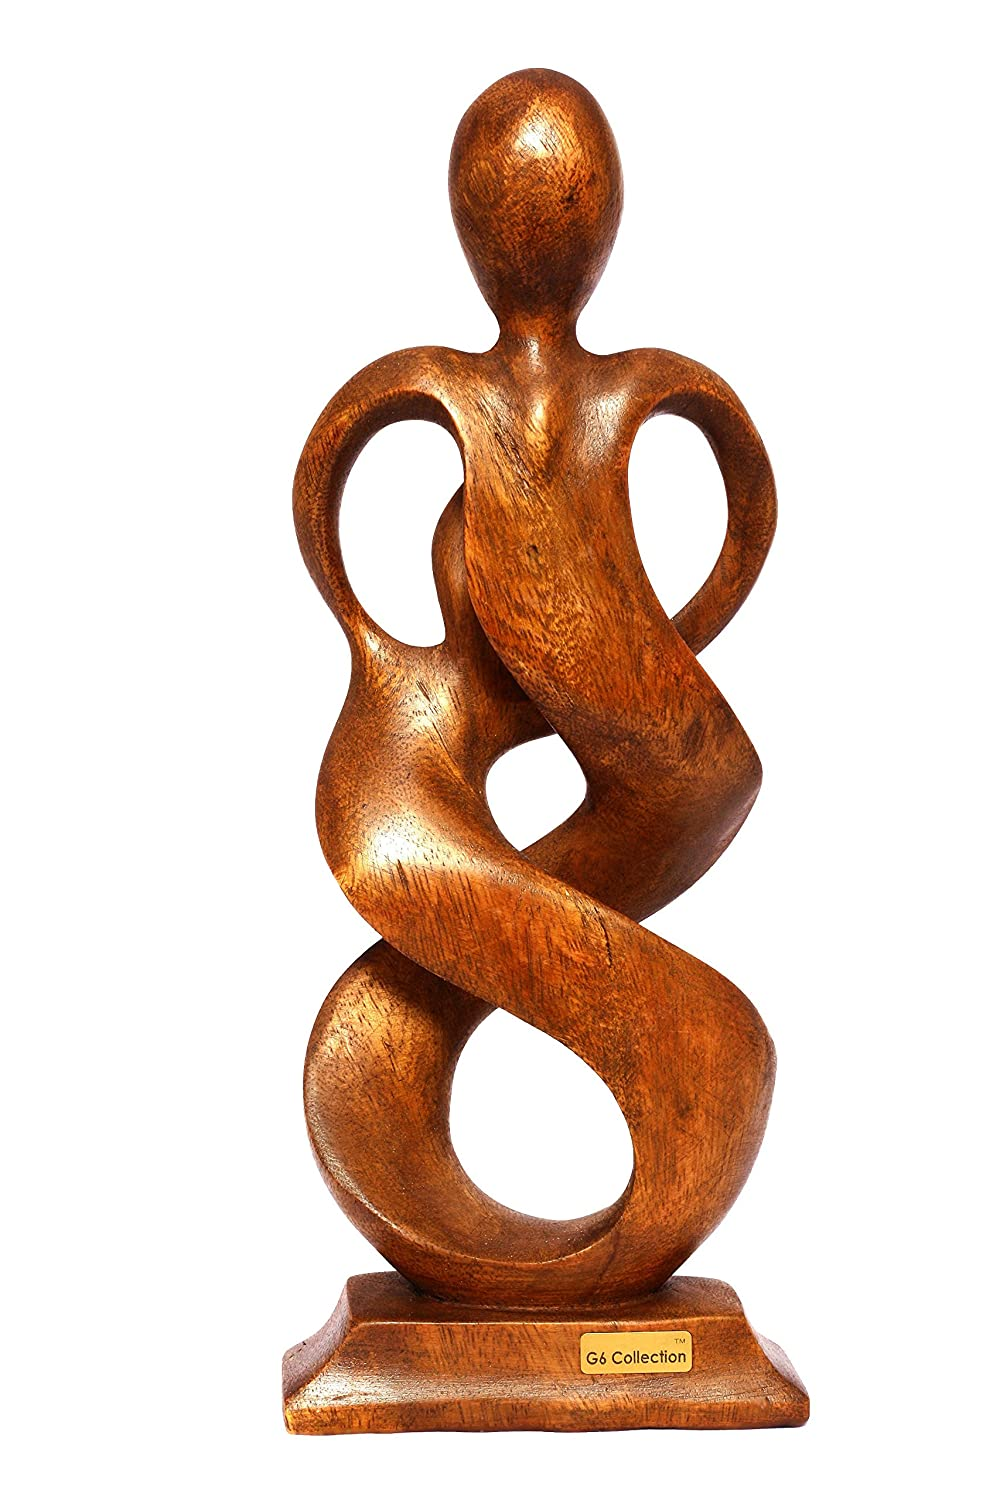 Entwined Spirits Gift Art Decorative Home Decor Figurine Accent Decoration Artwork Handcarved Entwined Spirits G6 Collection 12 Wooden Handmade Abstract Sculpture Statue Handcrafted